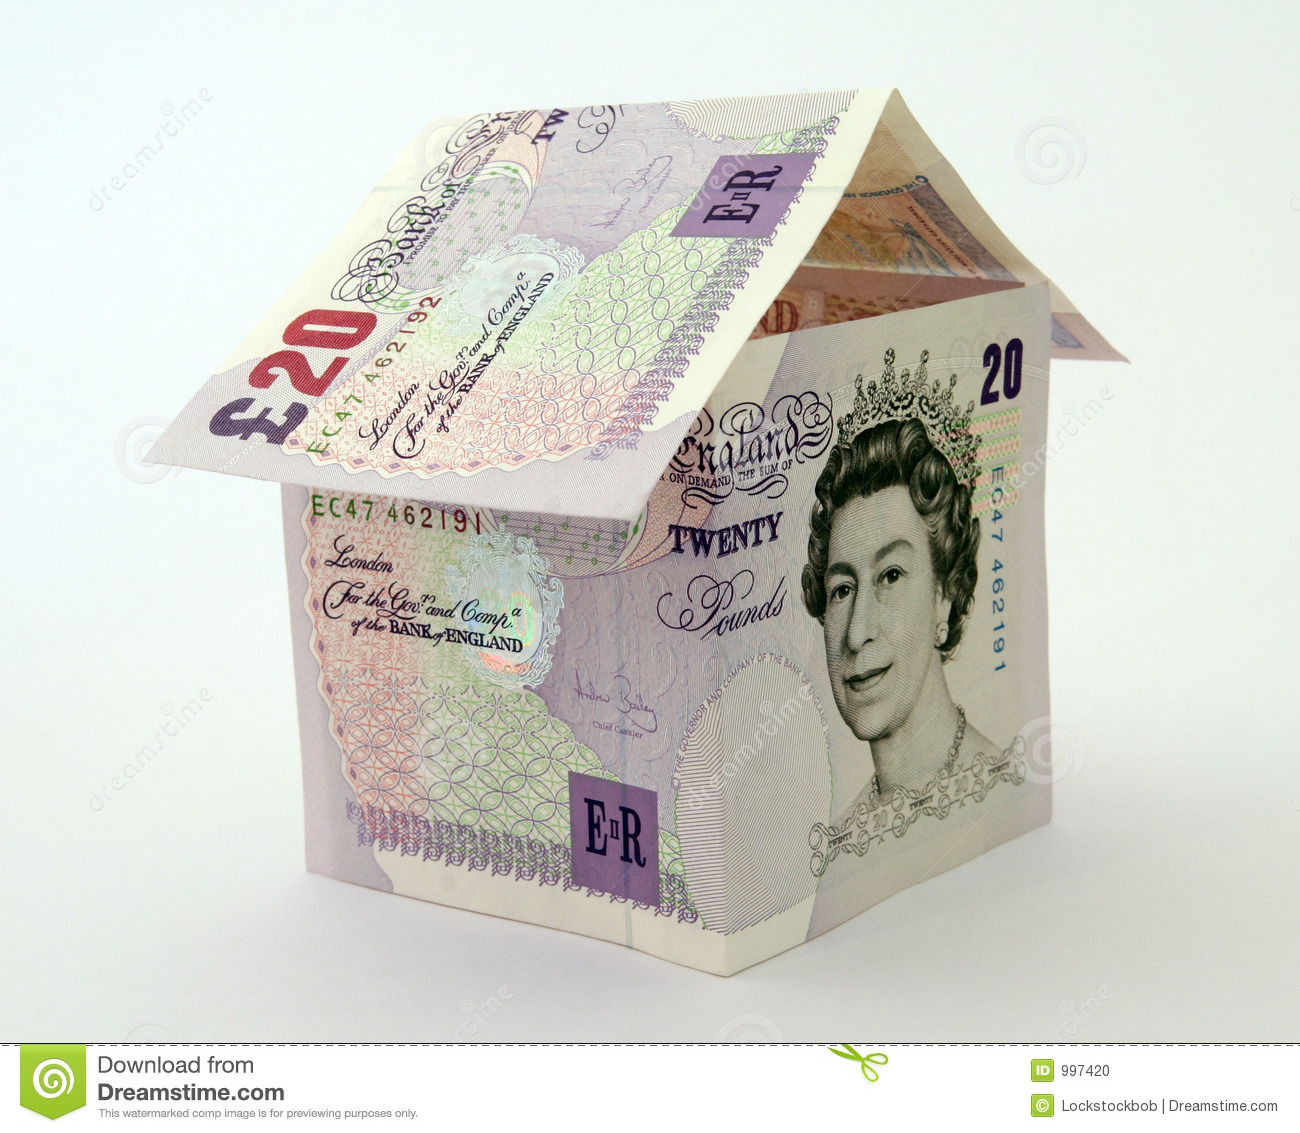 House Made Of Money Notes And Bills Editorial Image - Image: 997420